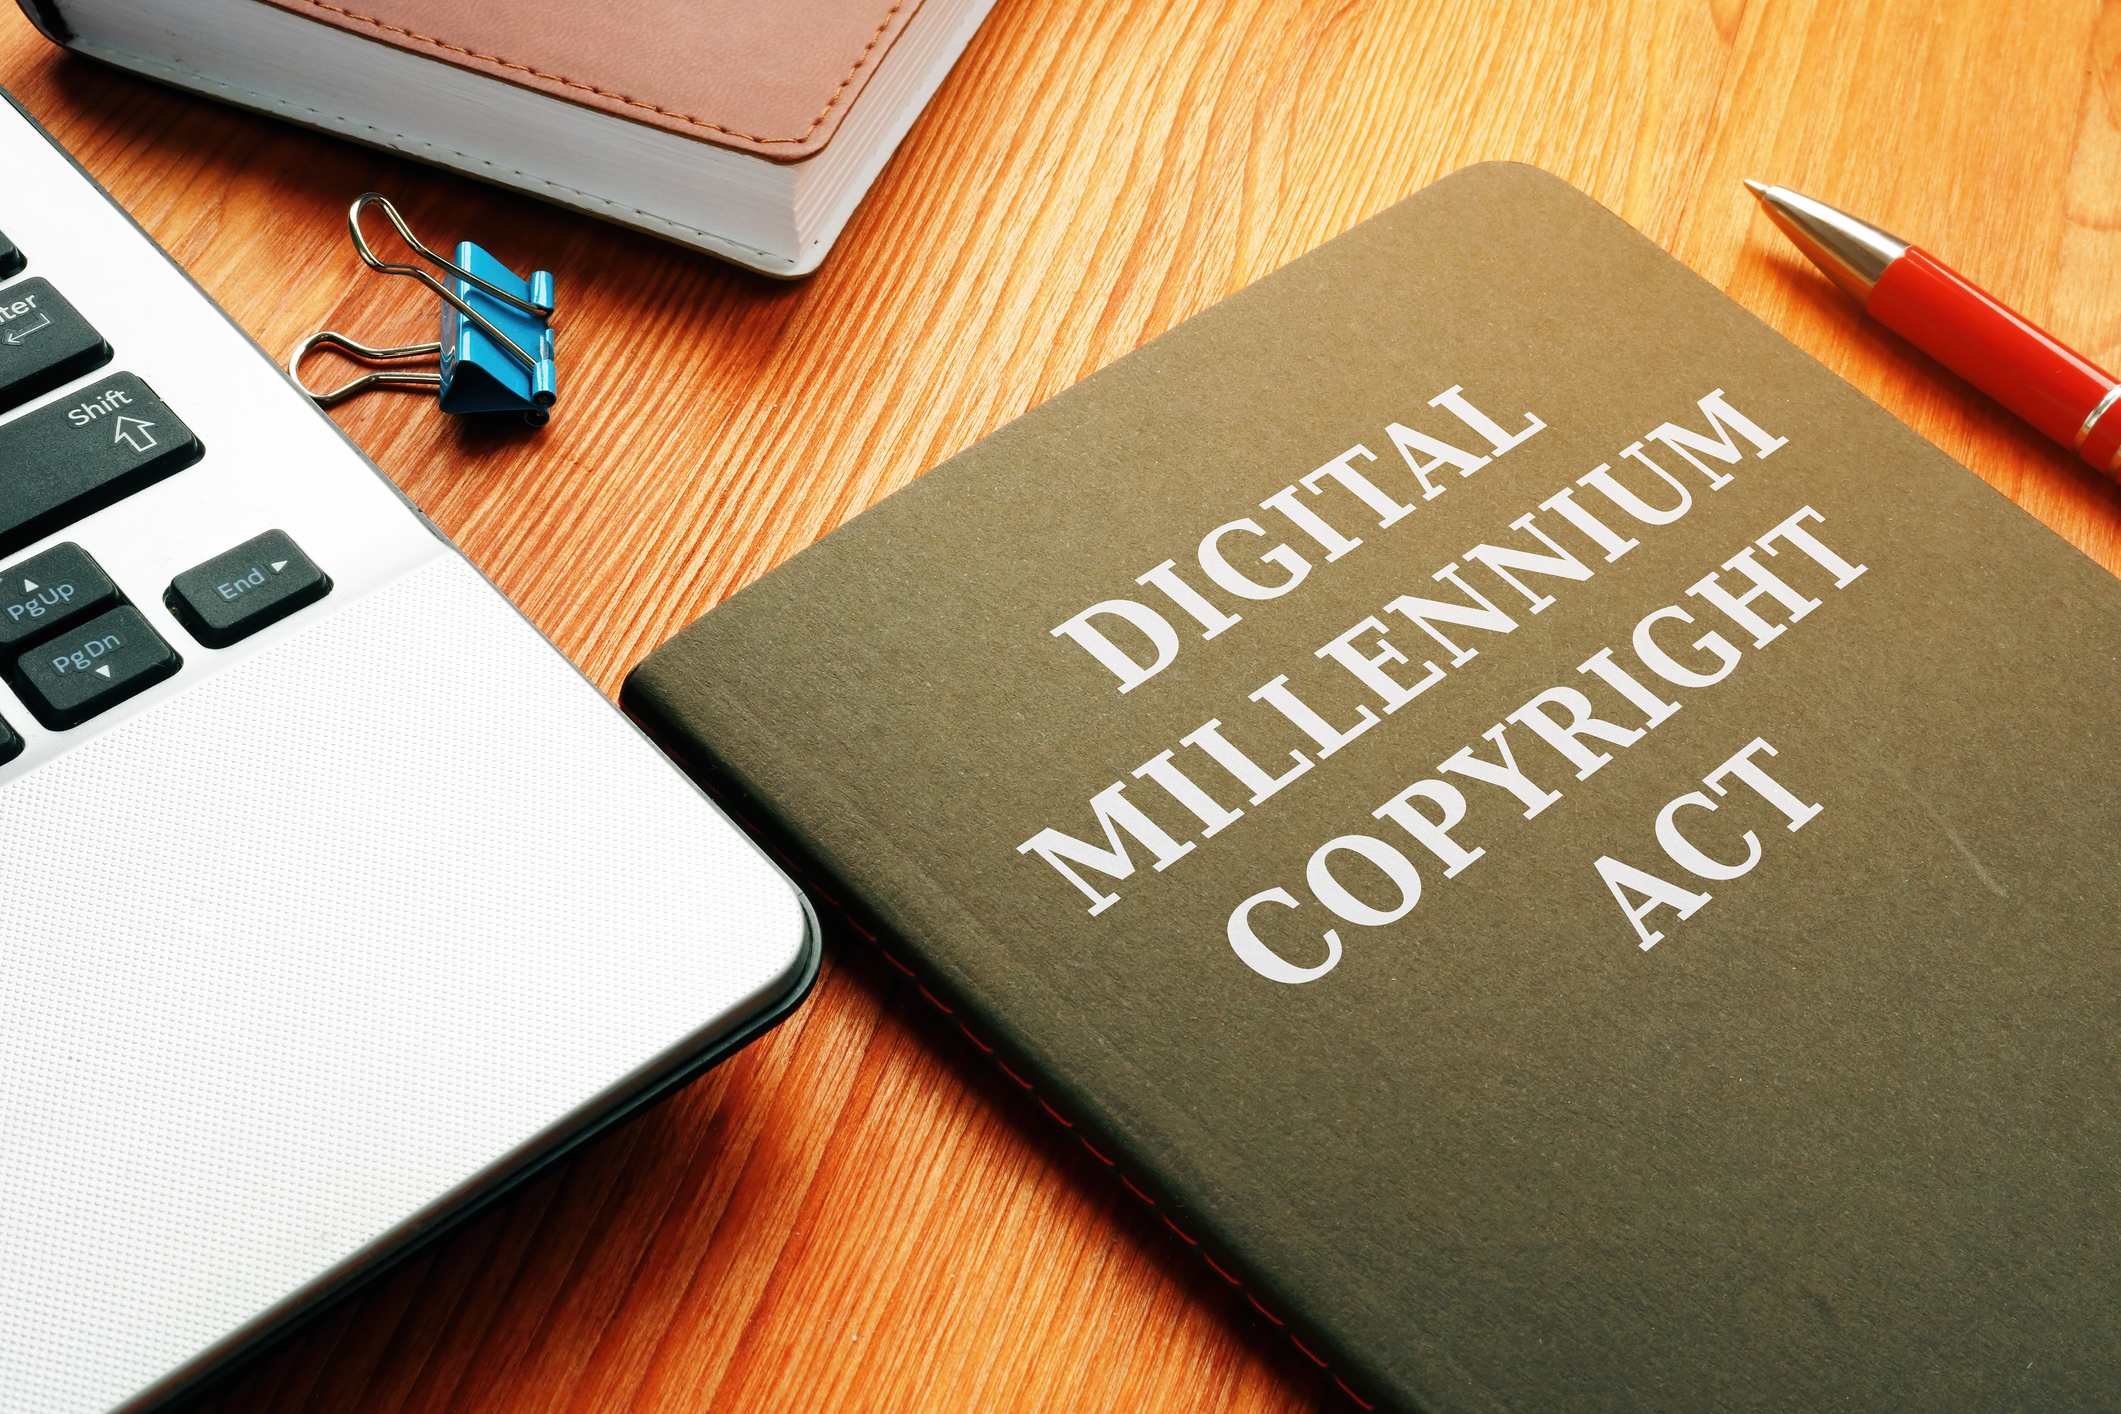 DMCA Digital Millennium Copyright Act and laptop.